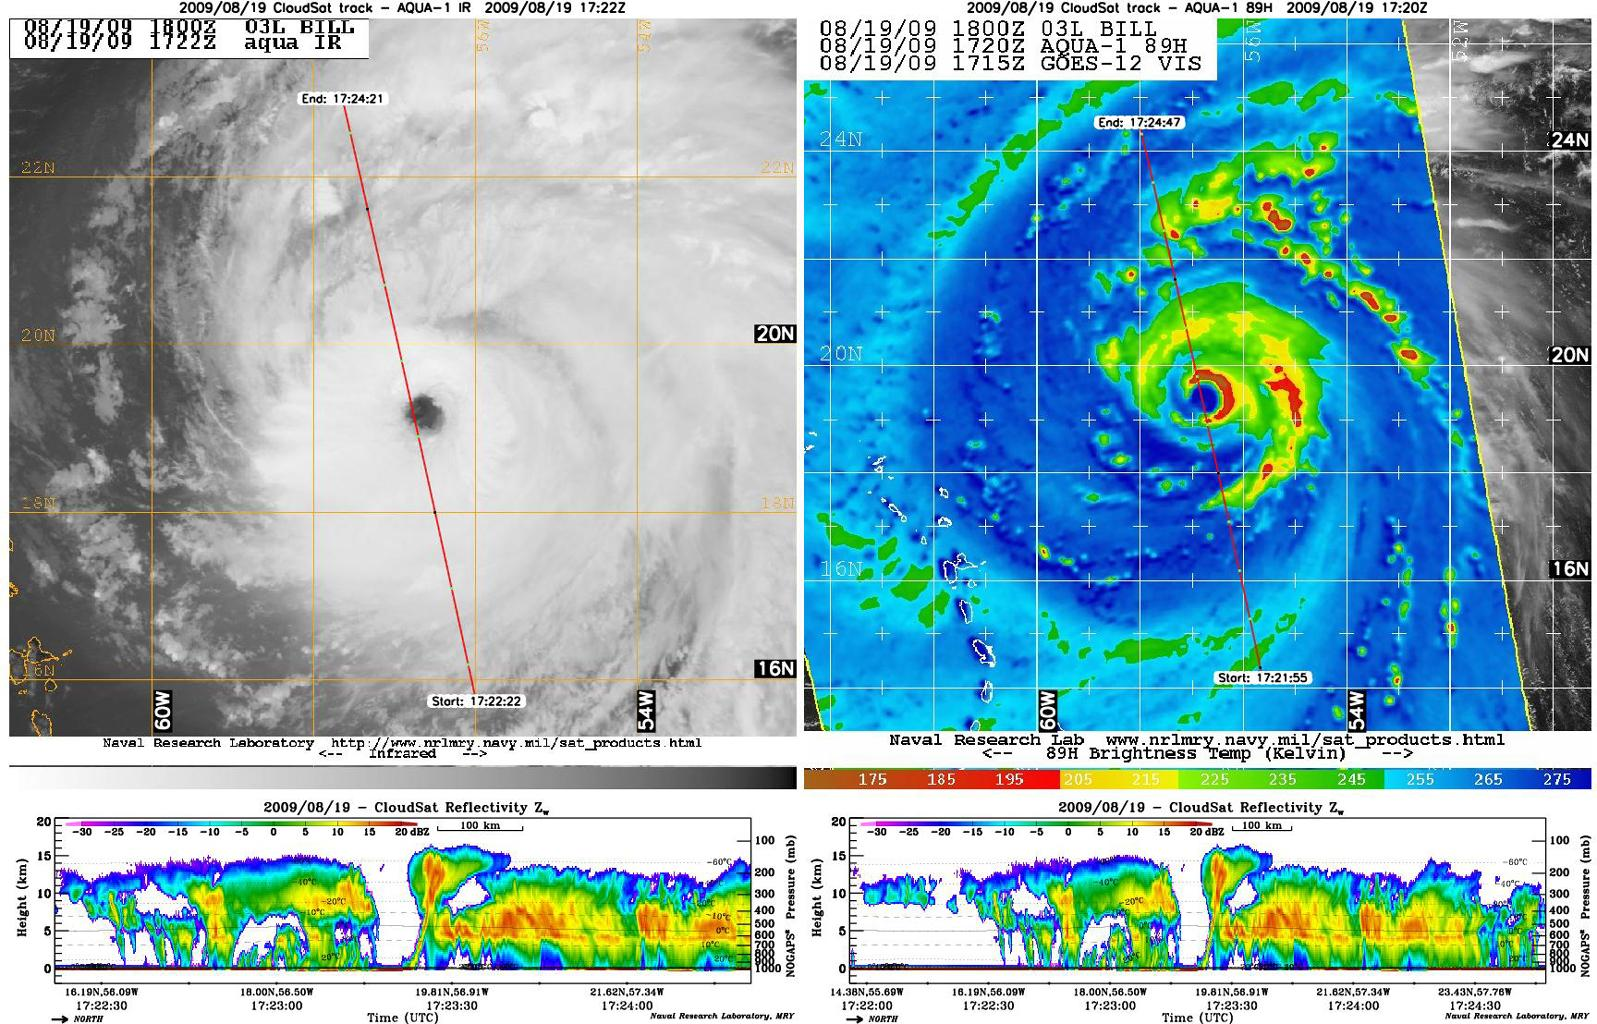 NASA' satellite CloudSat captured an extraordinary eye overpass of a category 4 Hurricane Bill on August 19, 2009 at 1720 UTC (1220 EDT). Bill's maximum sustained winds are 132 mph (115 knots) with a central pressure of 947 mb.